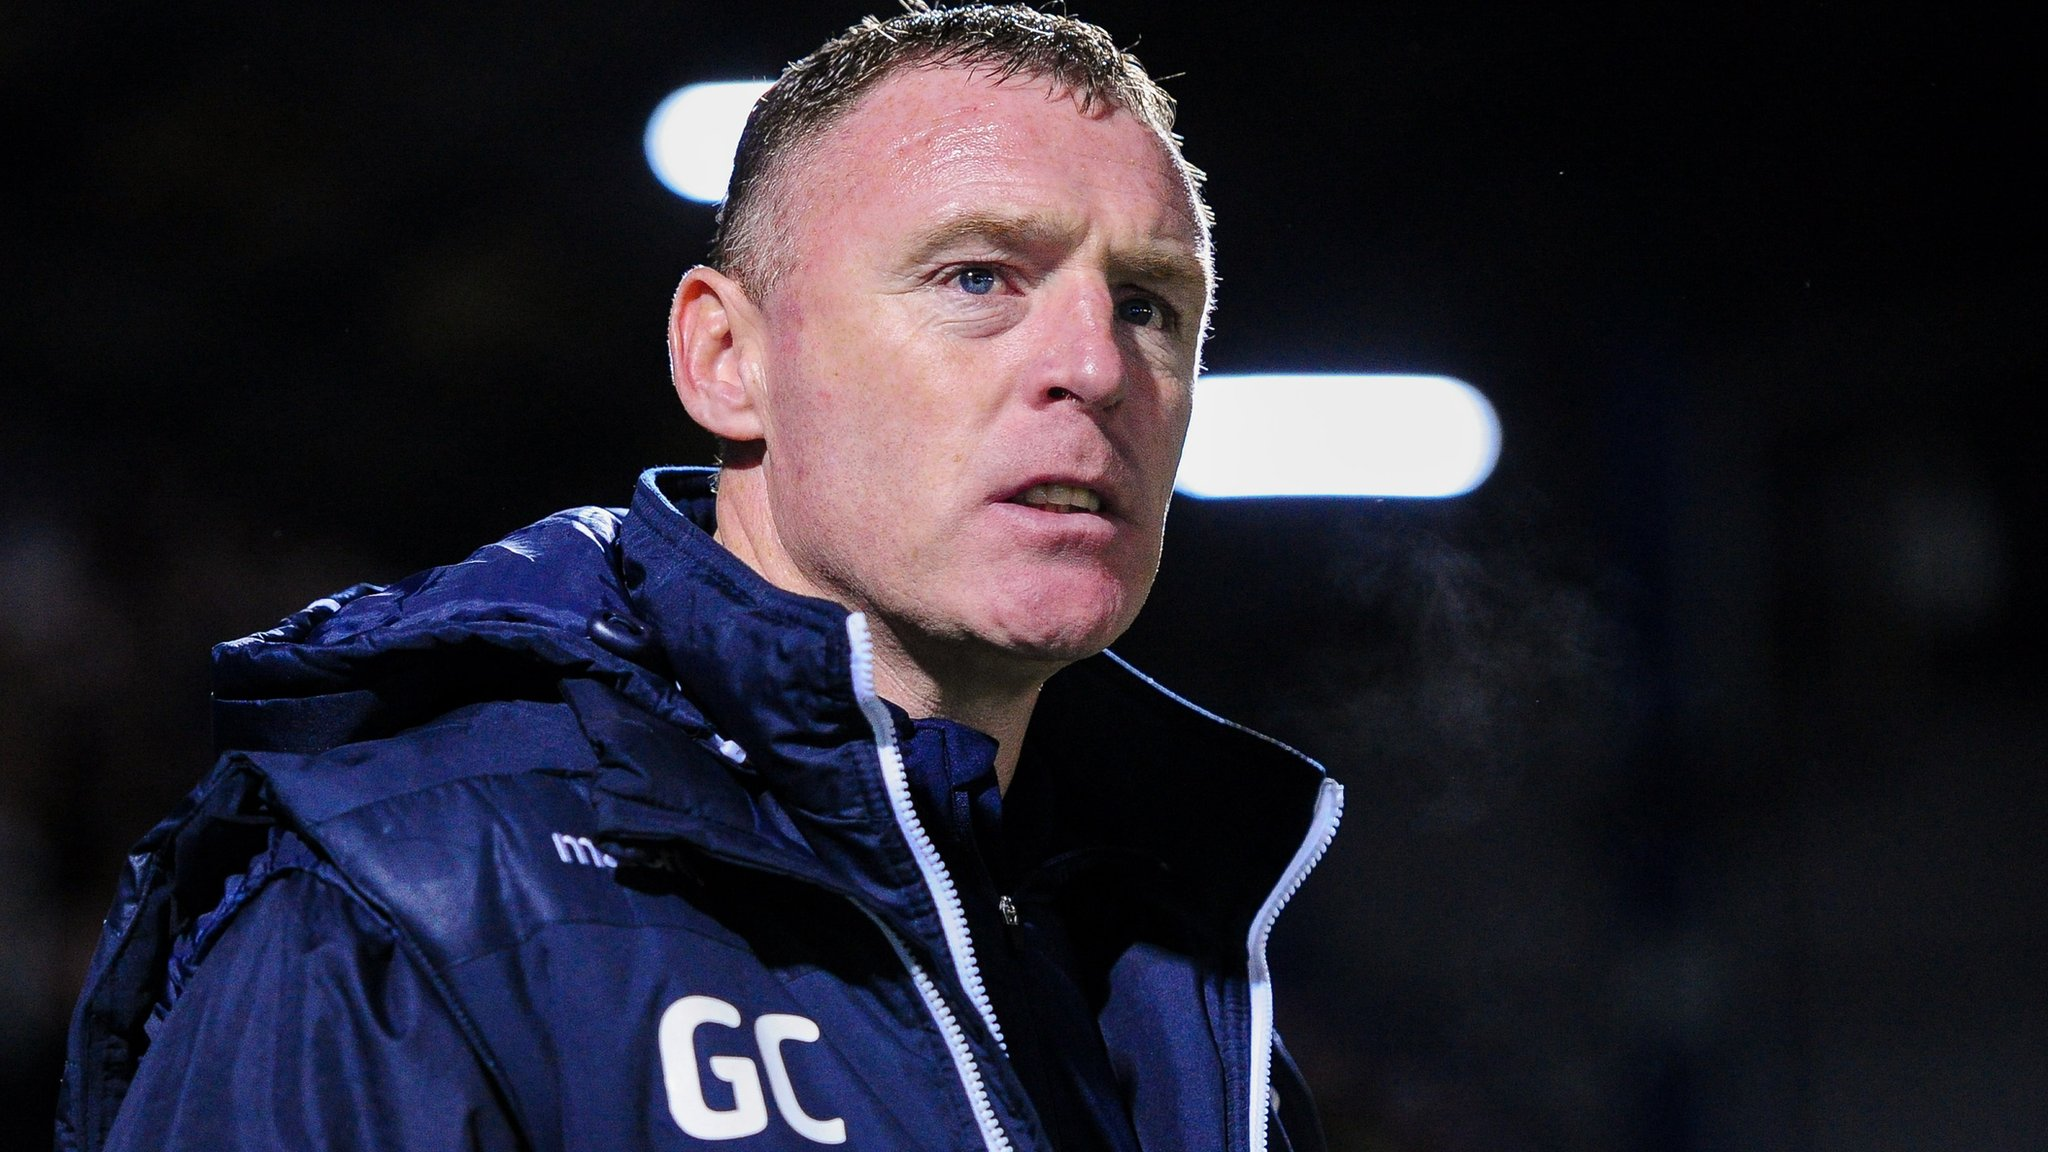 Bristol Rovers: Graham Coughlan anger at Vaughan 'punch' outcome